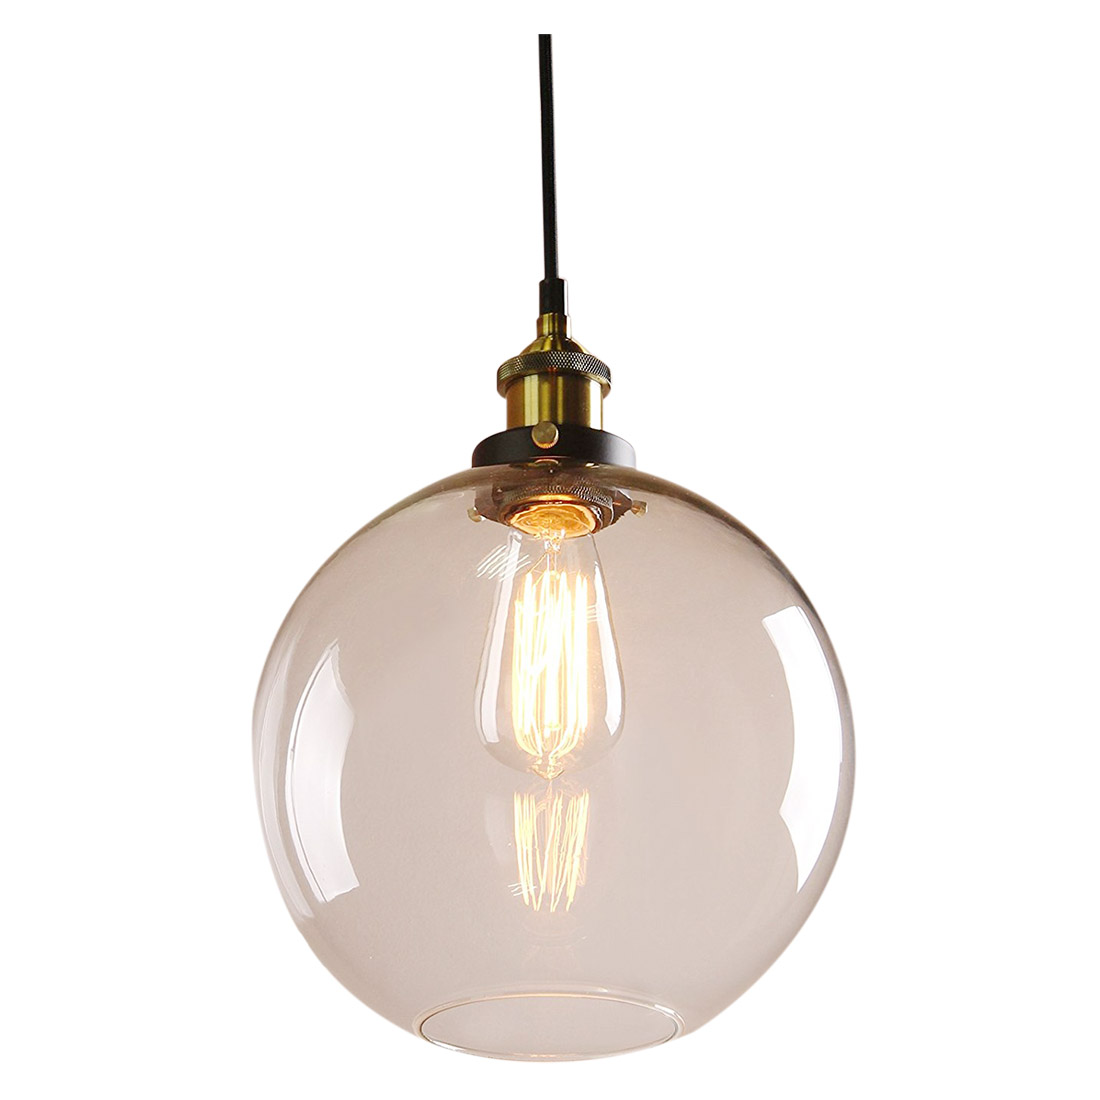 Industrial lamps for sale - Industrial Lamps For Sale